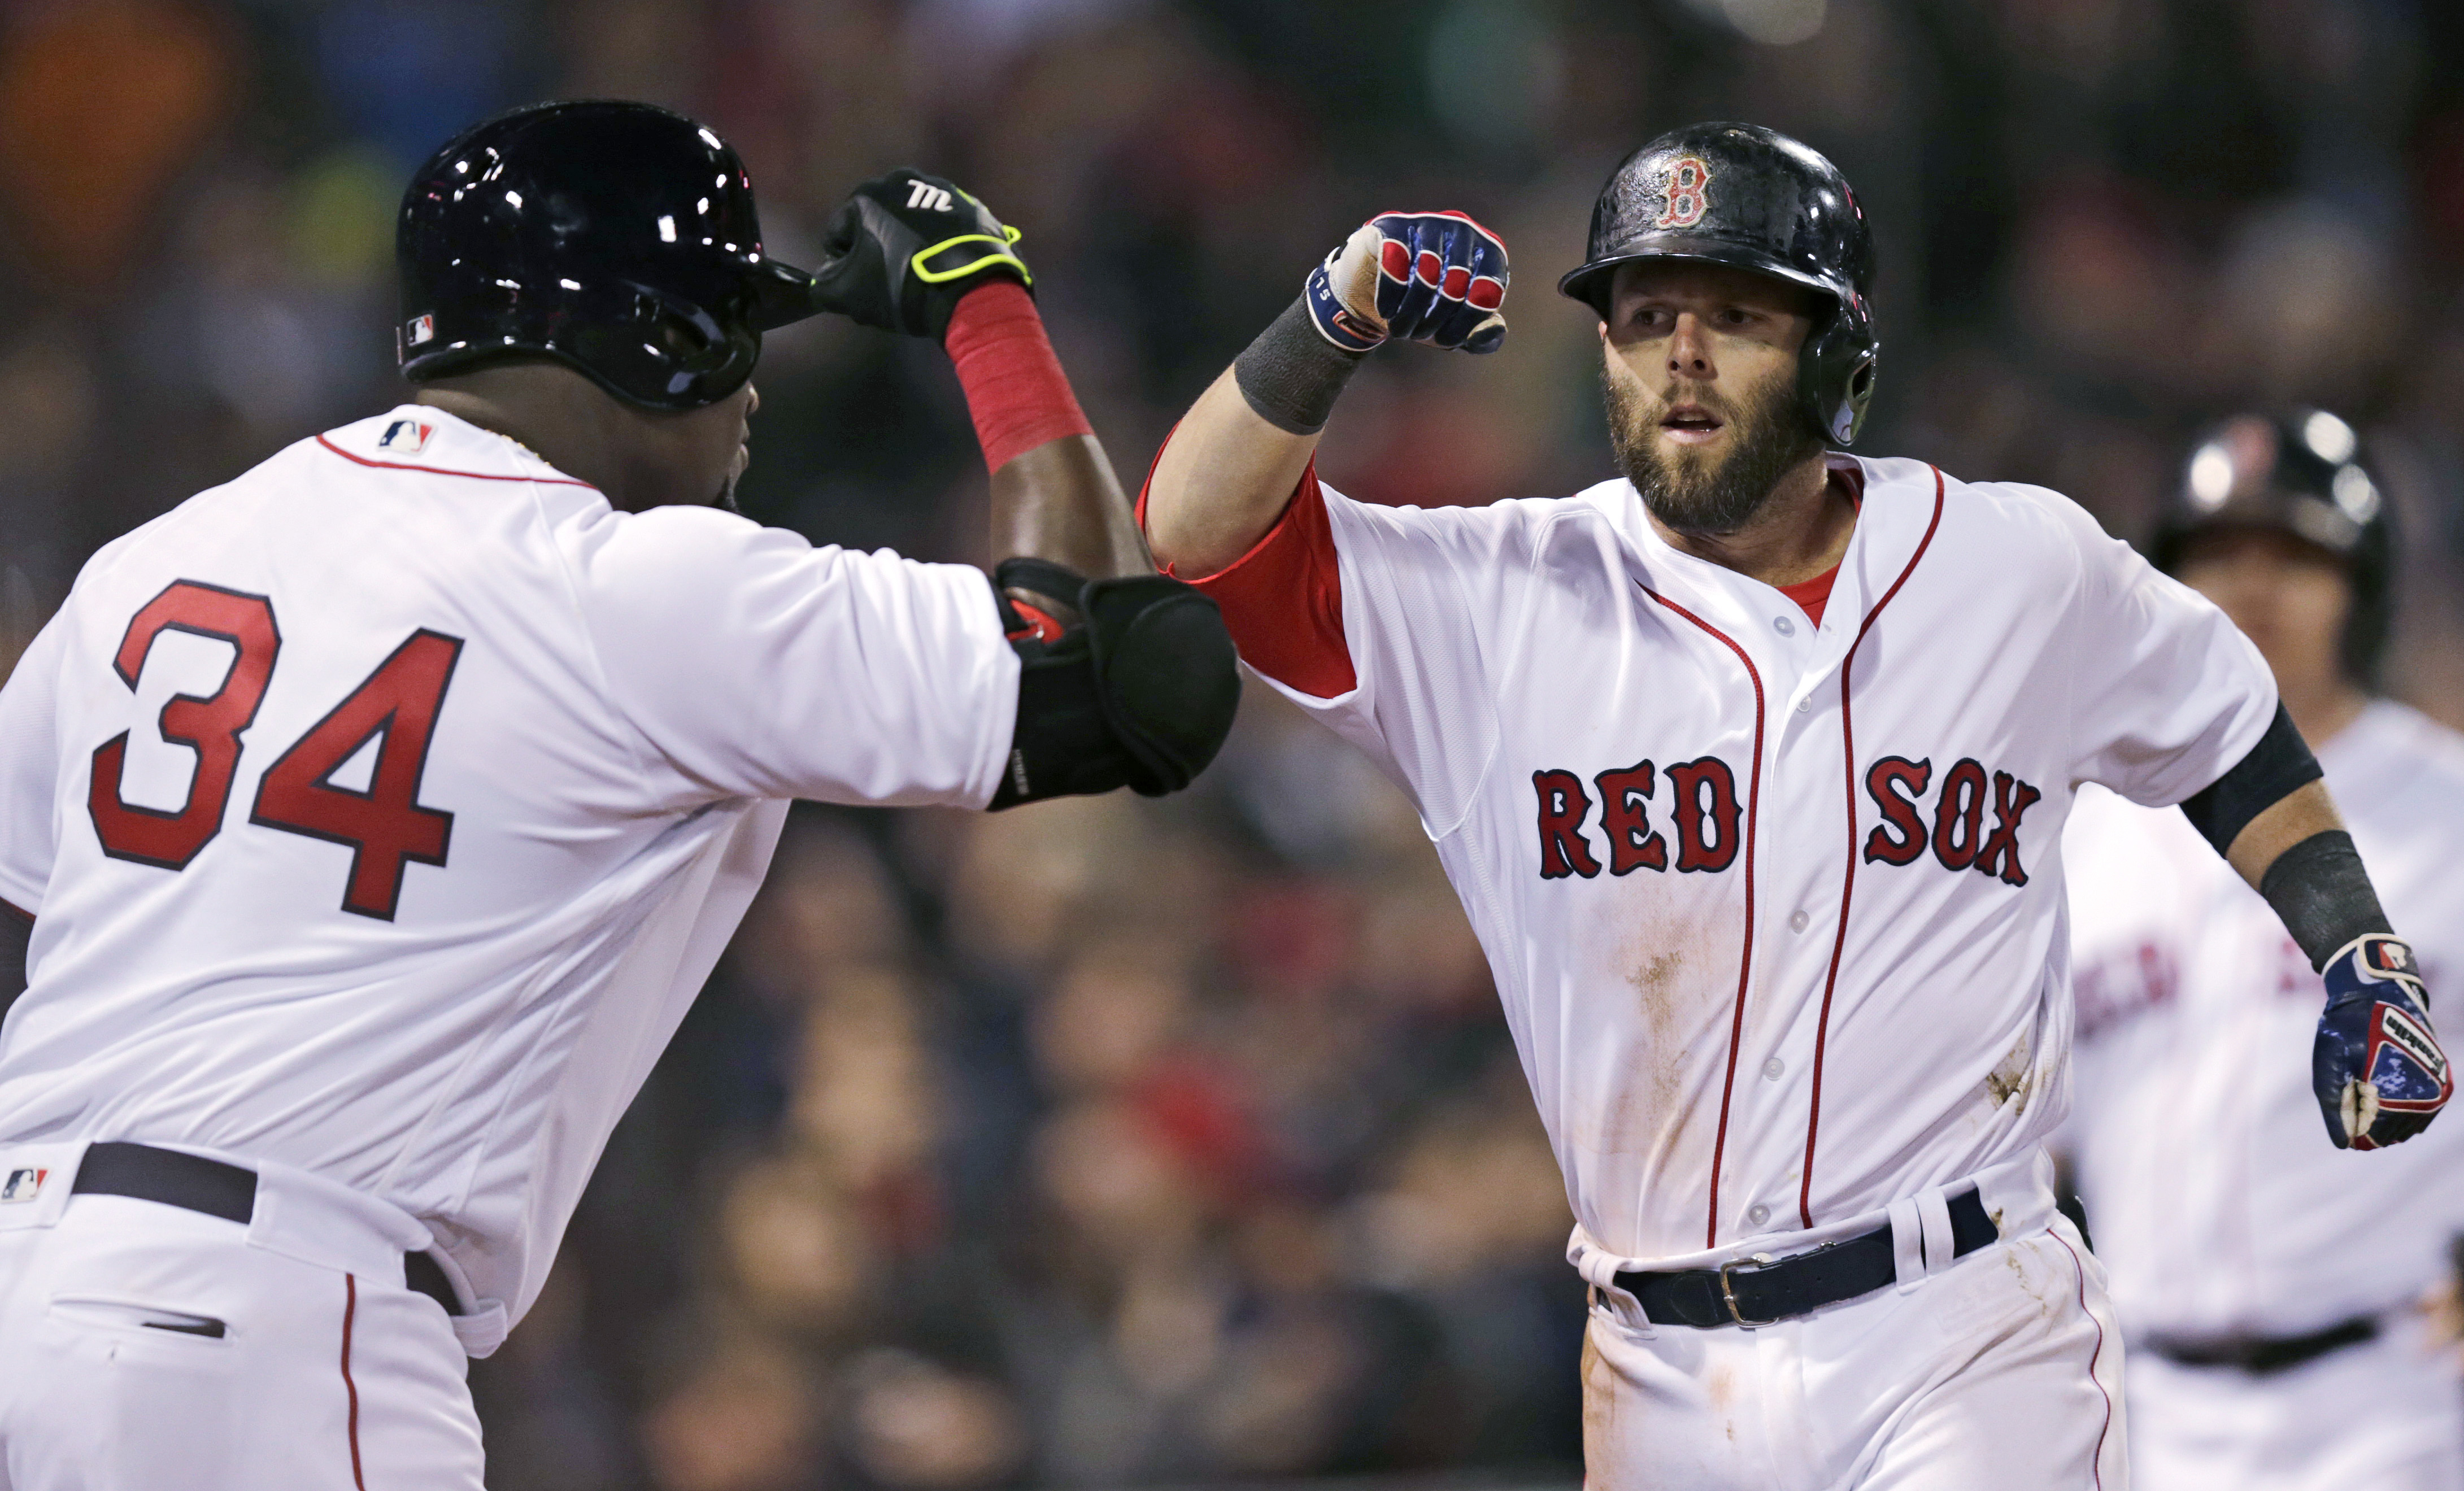 Boston Red Sox's Dustin Pedroia, right, is congratulated by David Ortiz (34) after his home run, his second of the night, during the eighth inning of a baseball game against the Atlanta Braves at Fenway Park in Boston, Wednesday, April 27, 2016. (AP Photo